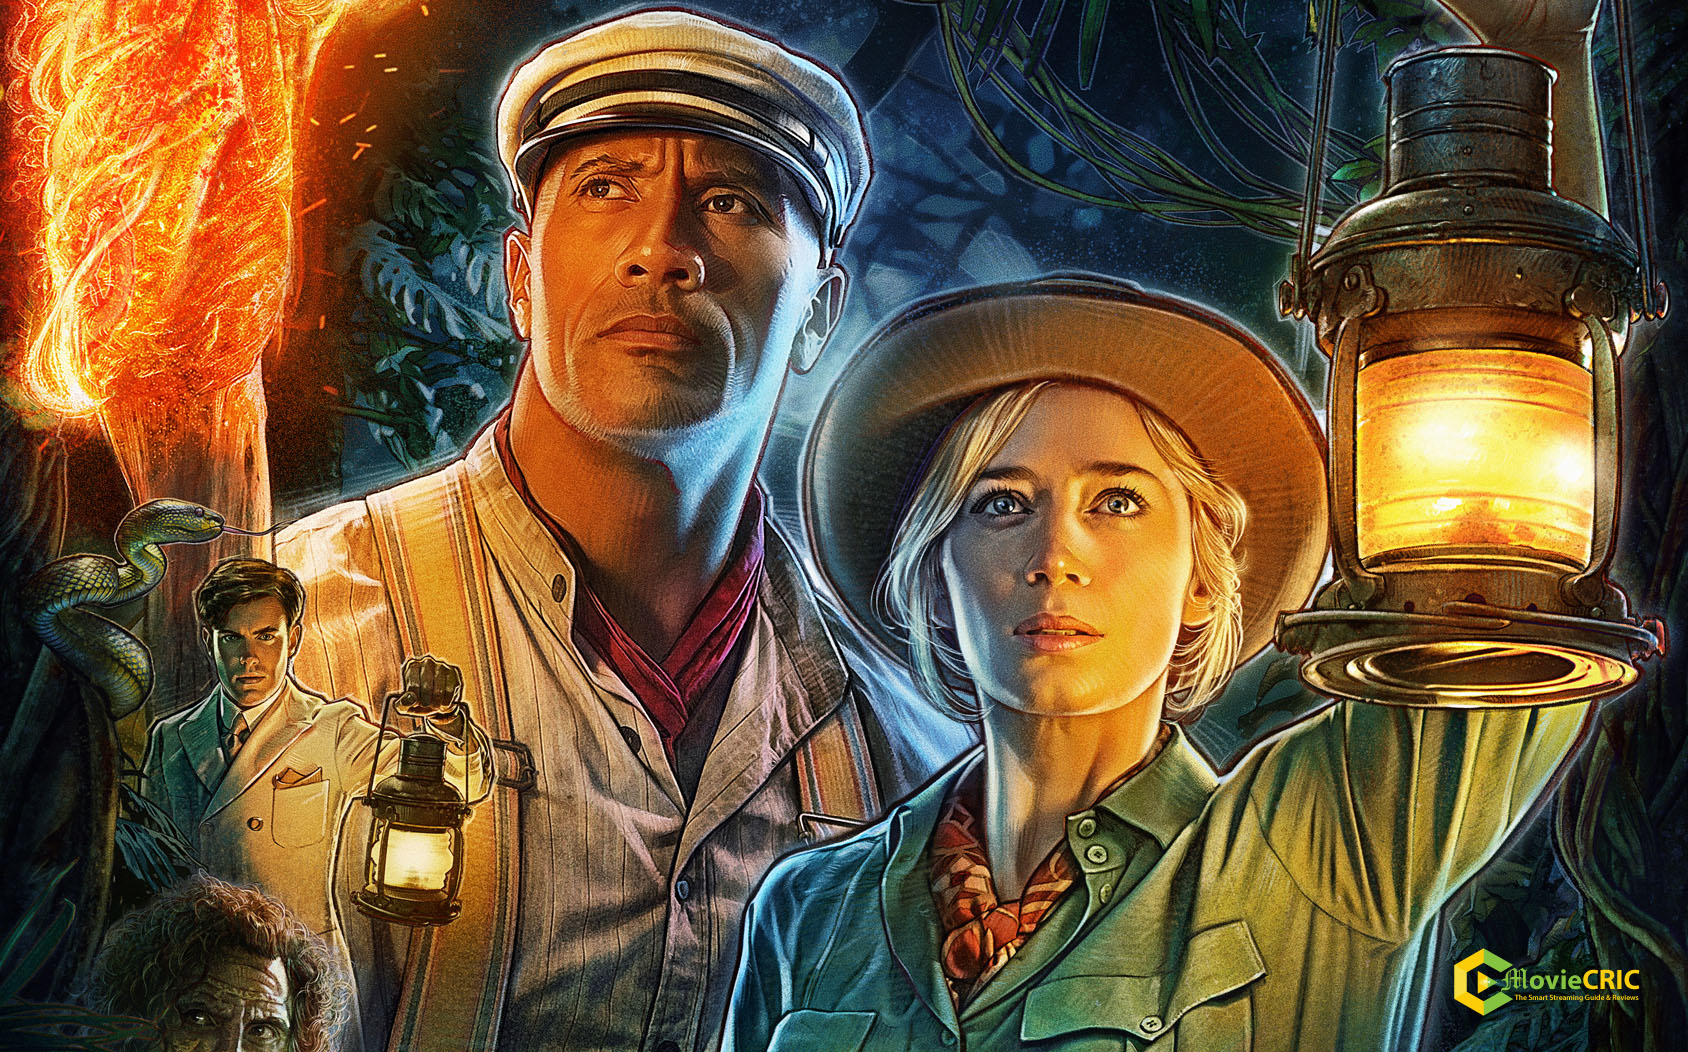 Jungle Cruise FULL movie: How to watch Jungle Cruise Online and on TV for free?